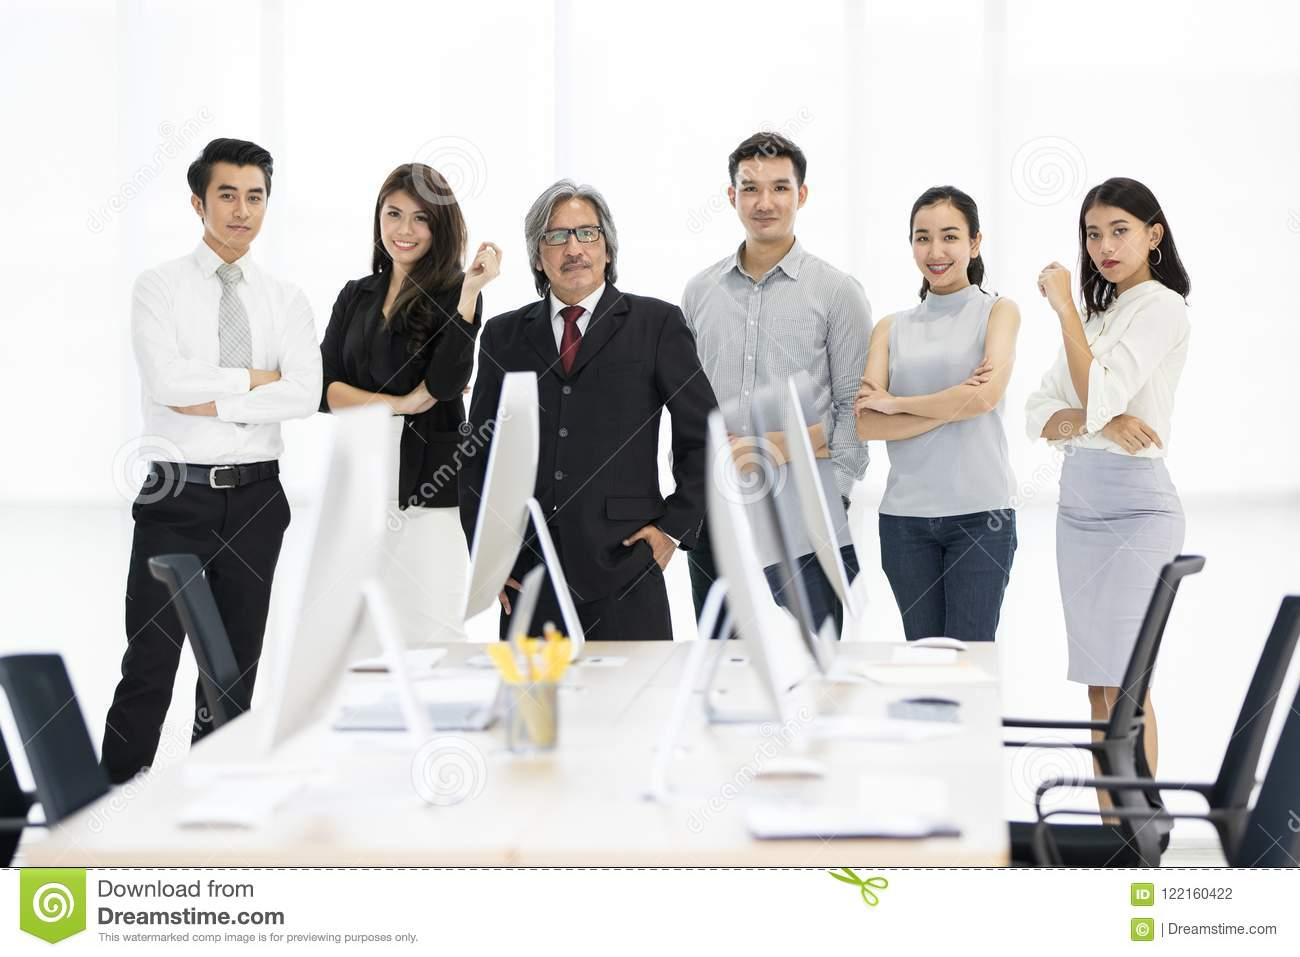 Group of 6 Asaina business people standing together in modern of